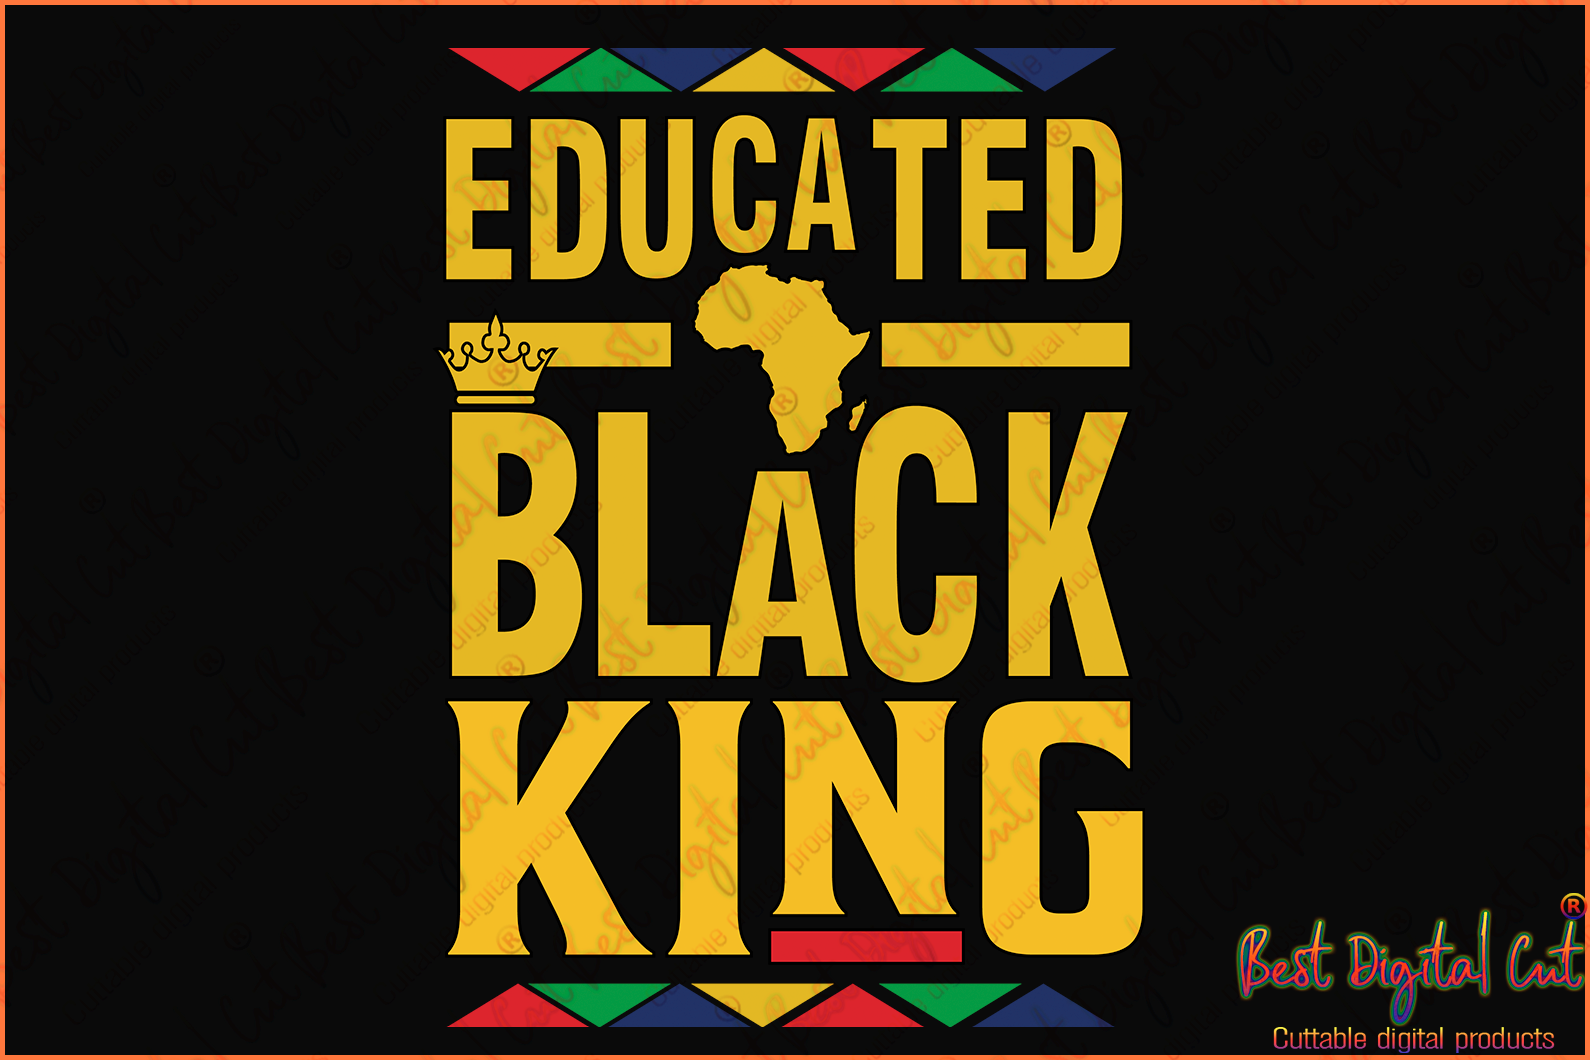 Educated black king svg,black king svg,king svg,black educators svg,black teachers,school svg,American new,black man svg,police officer,killing svg,vilence svg,protester American,silhouette svg, cricut svg files, decal and vinyl,